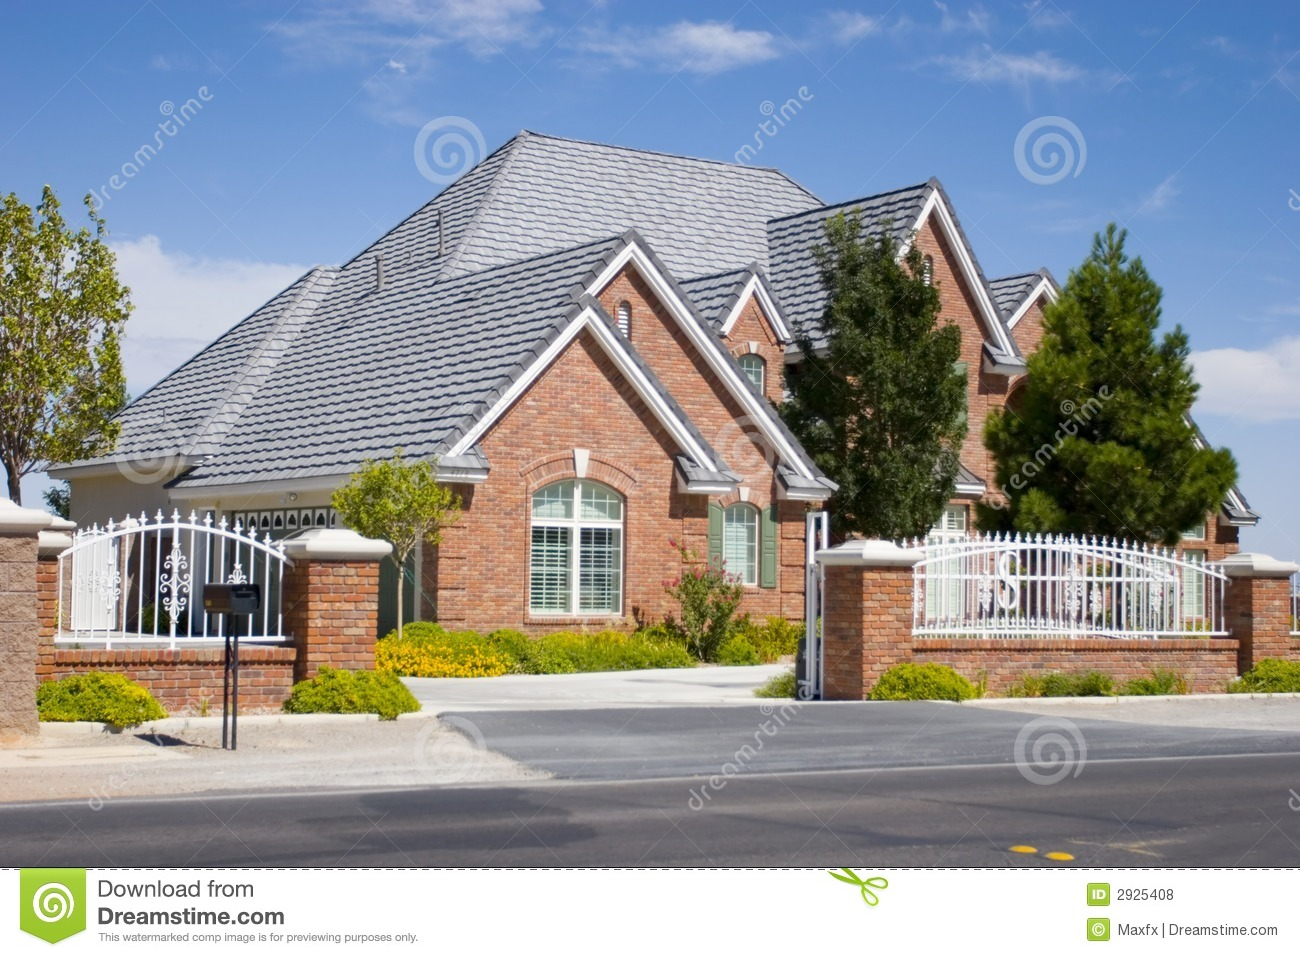 Luxury home royalty free stock photos image 2925408 for Free luxury home images